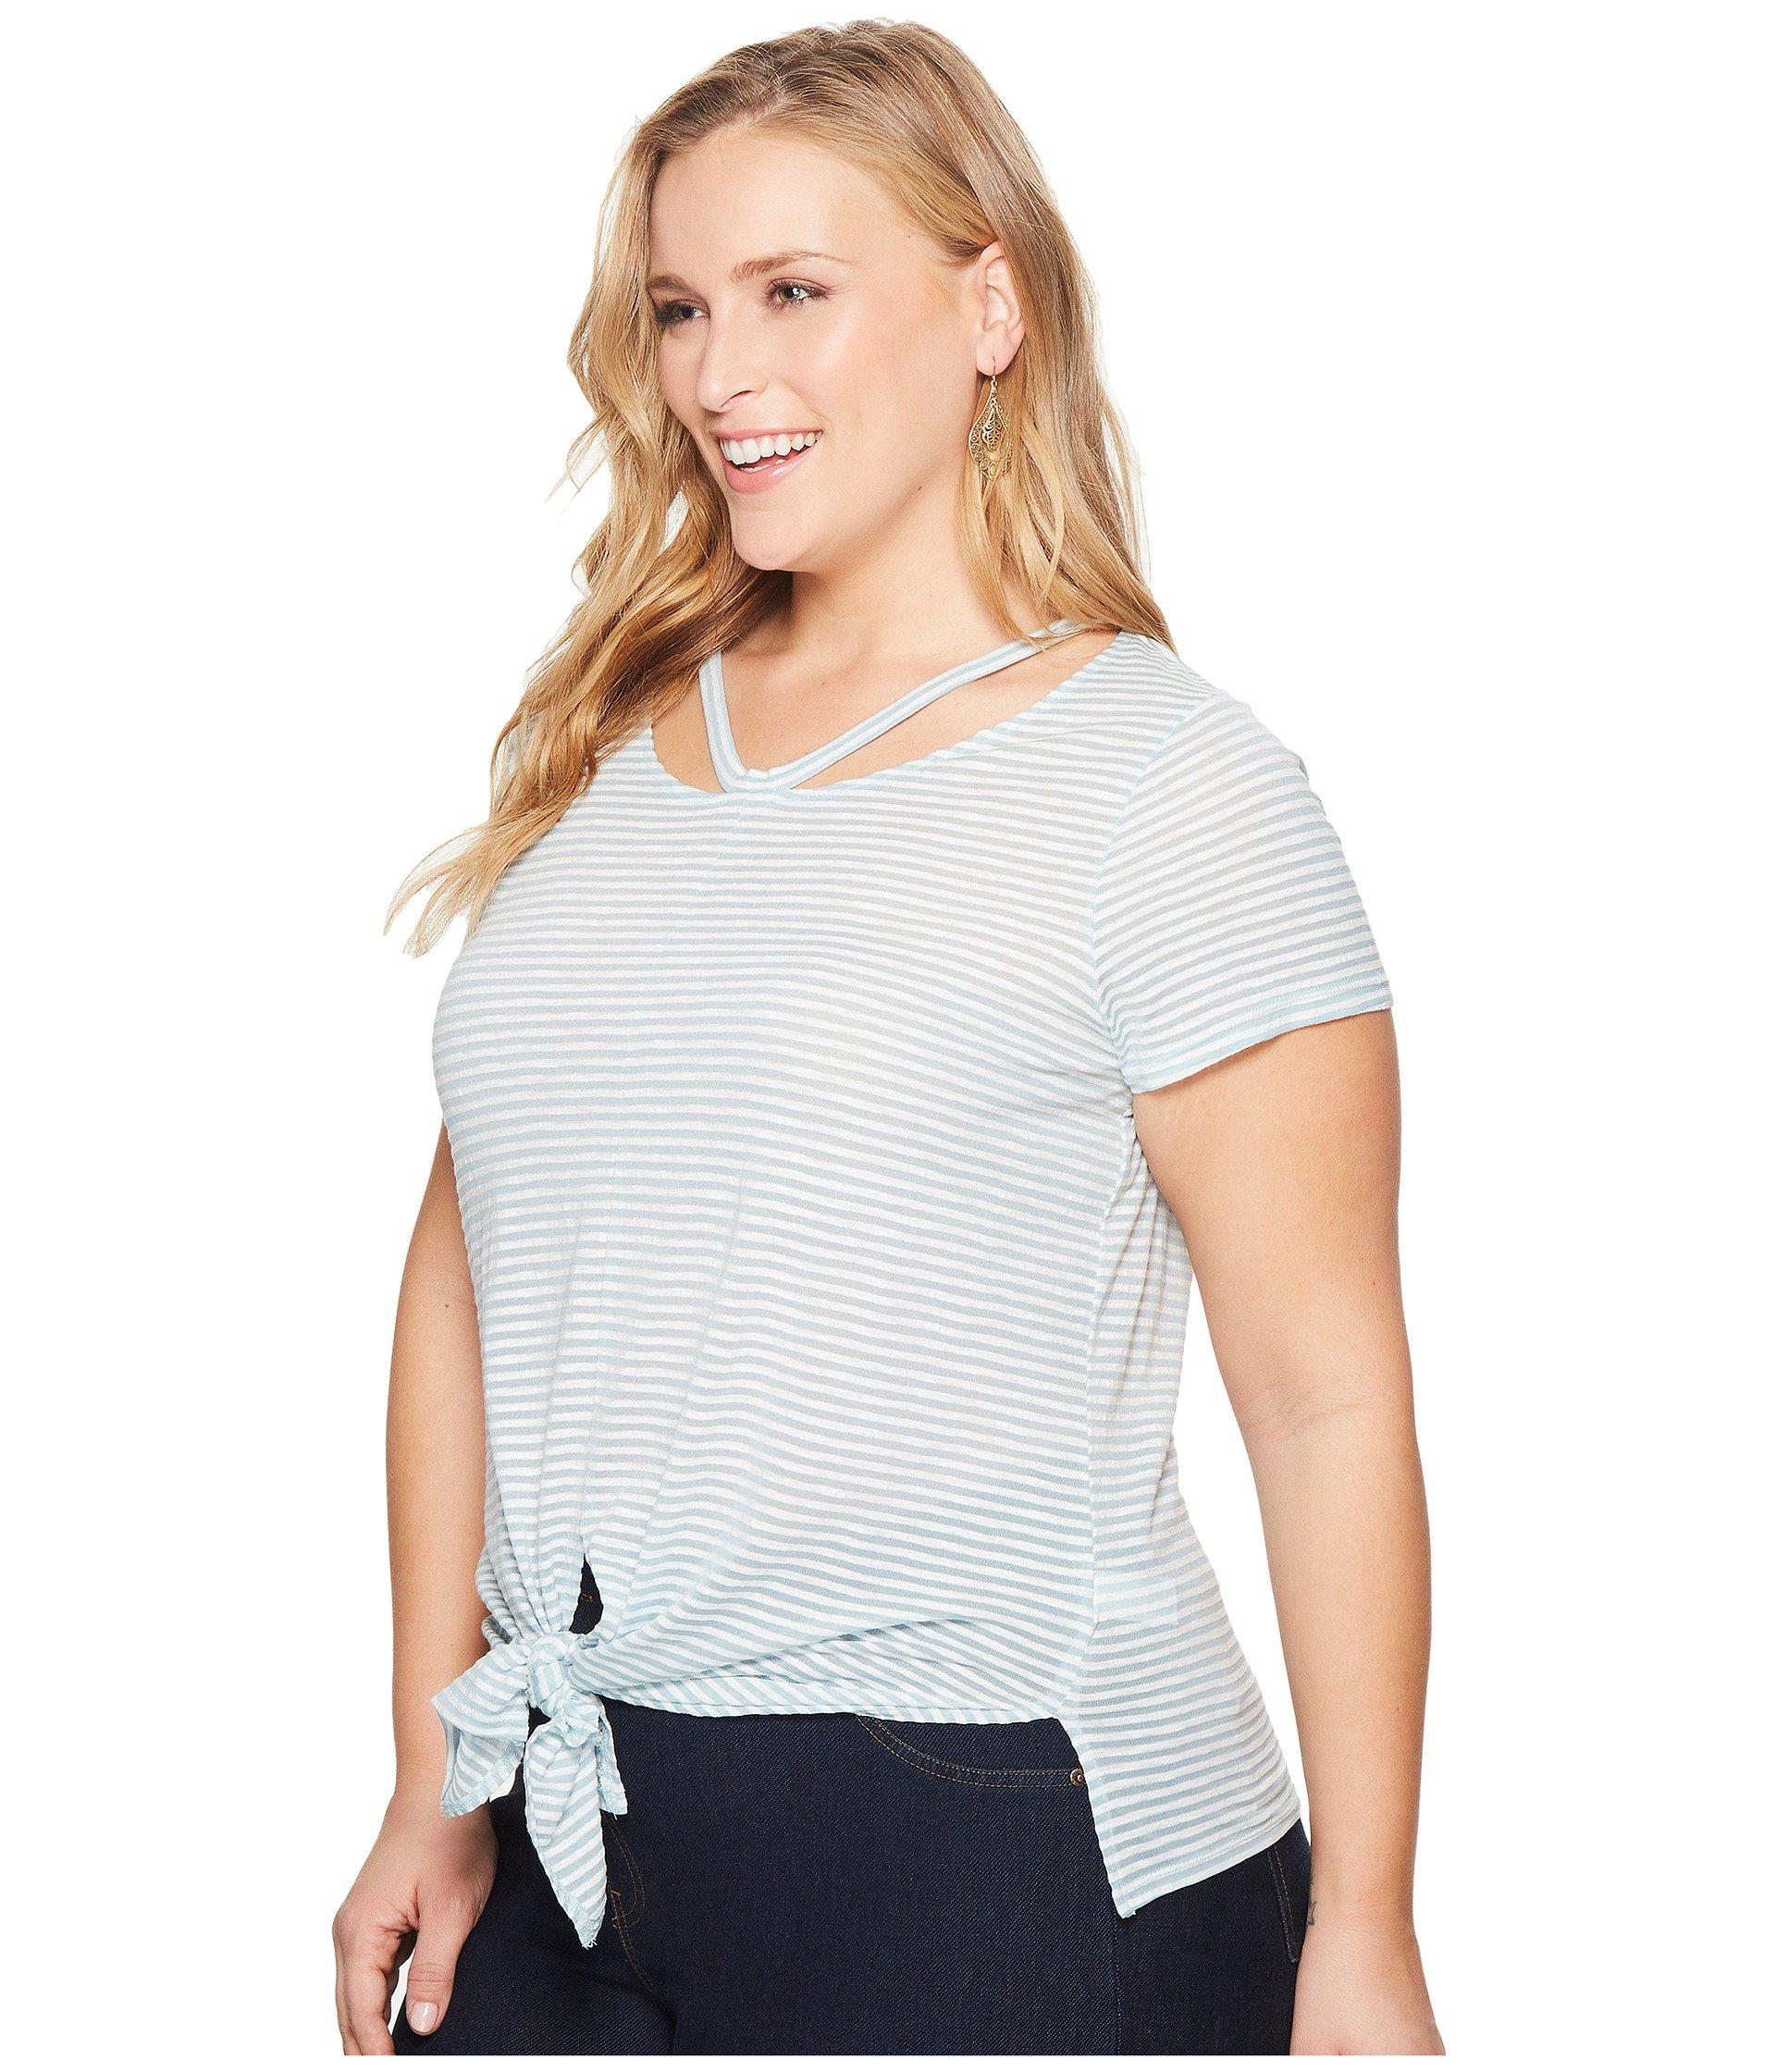 23bedbd7c Lyst - Lucky Brand Plus Size Shadow Stripe Tee in Blue - Save 24%